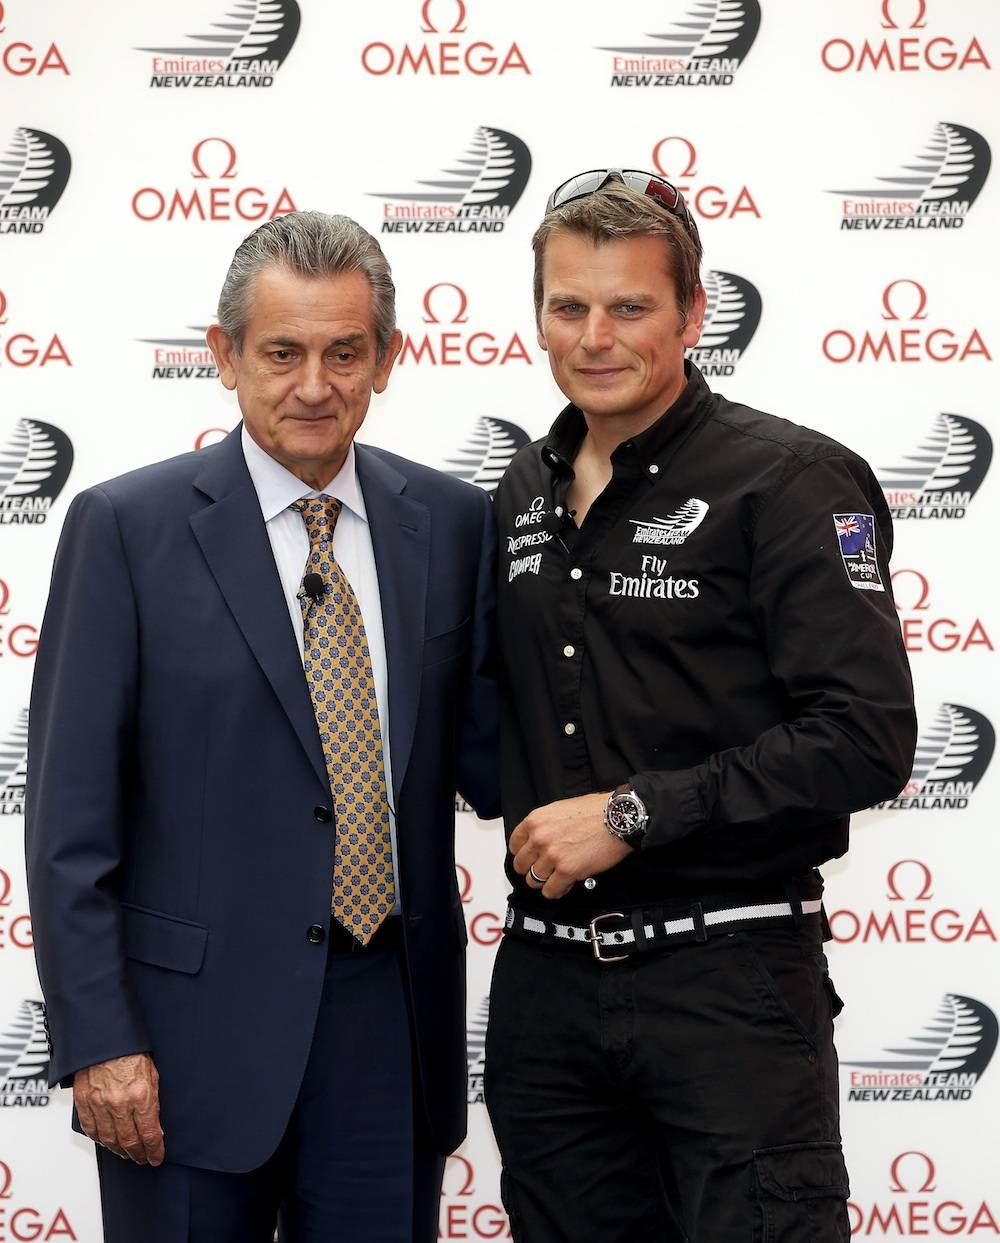 Omega America's Cup News Conference